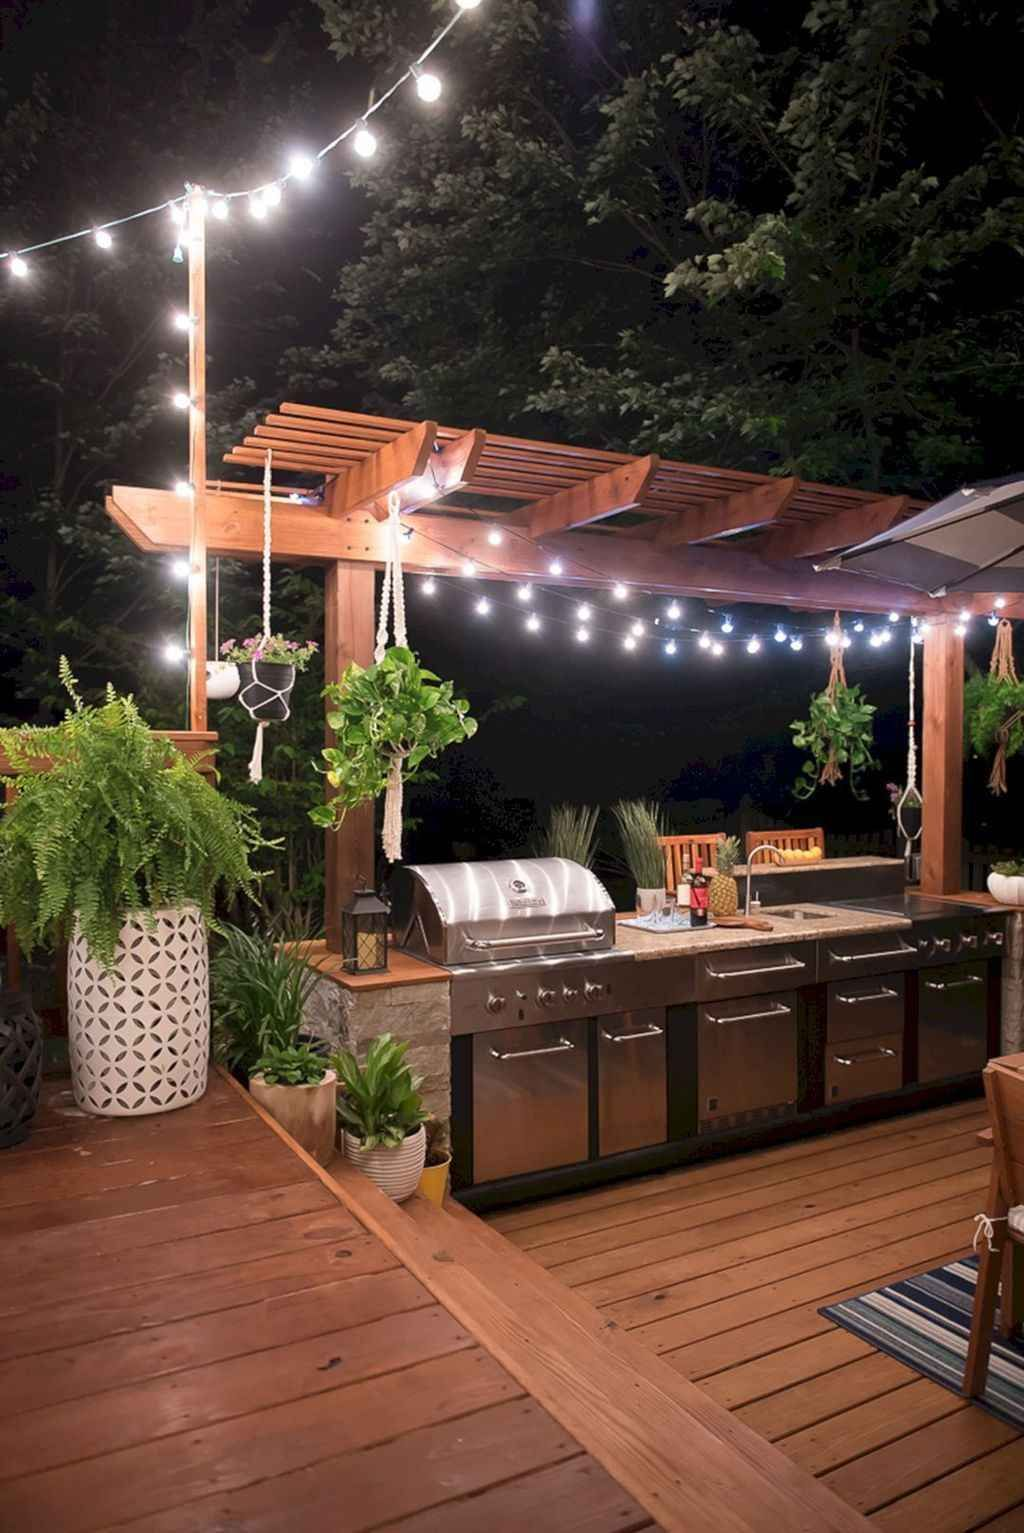 85 Best Outdoor Kitchen And Grill Ideas For Summer Backyard Barbeque In 2020 Outdoor Remodel Outdoor Kitchen Design Outdoor Kitchen Design Layout